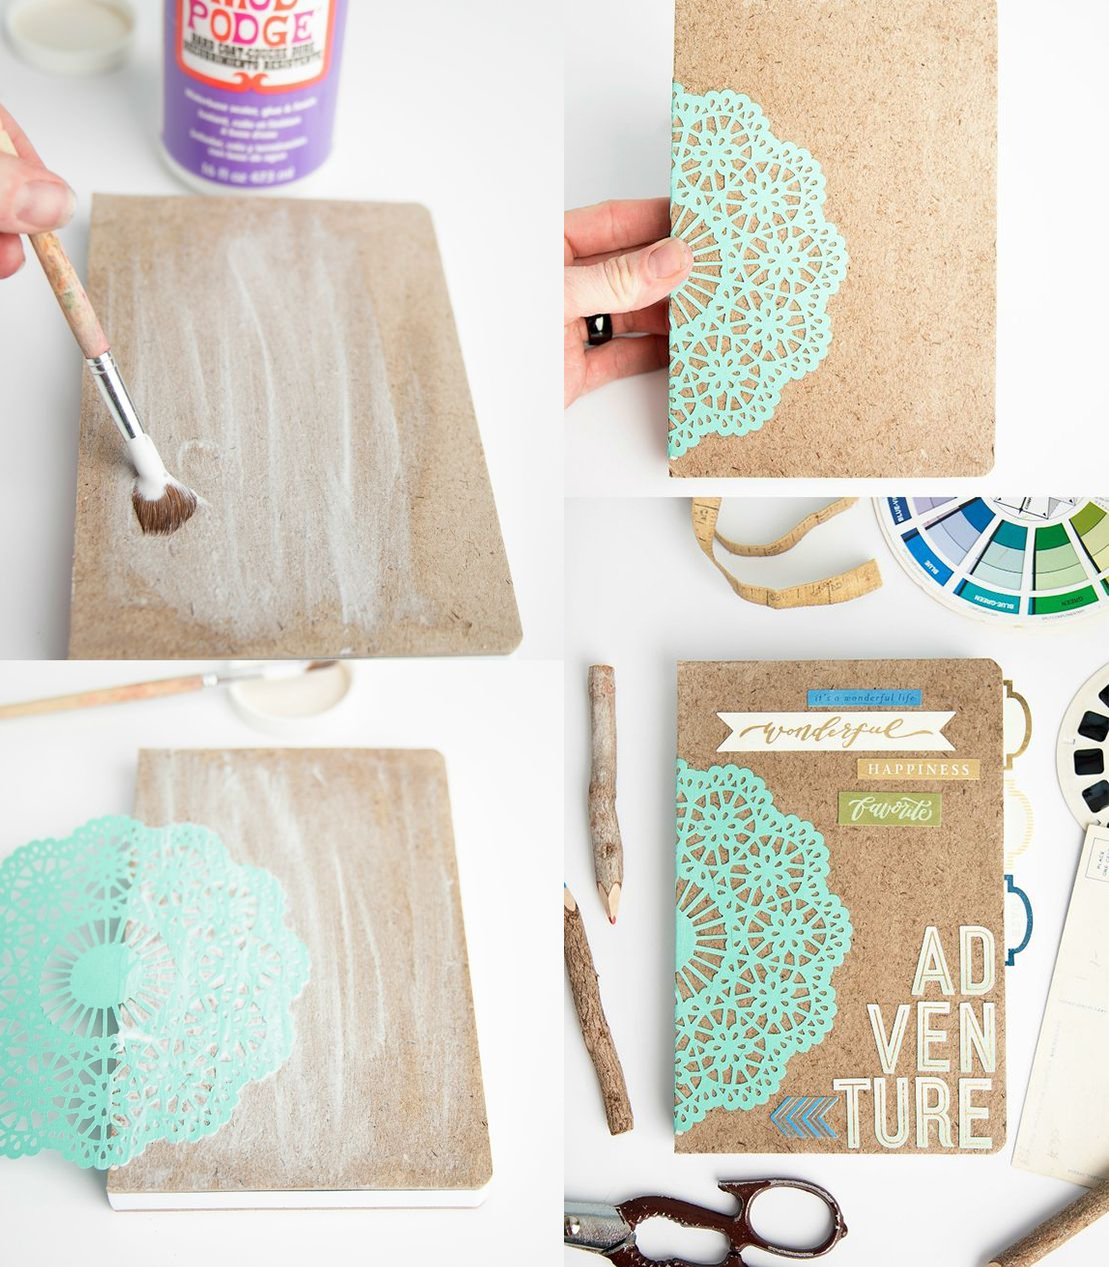 15 ideas super originales para decorar tus libretas for Todo ideas originales para decorar